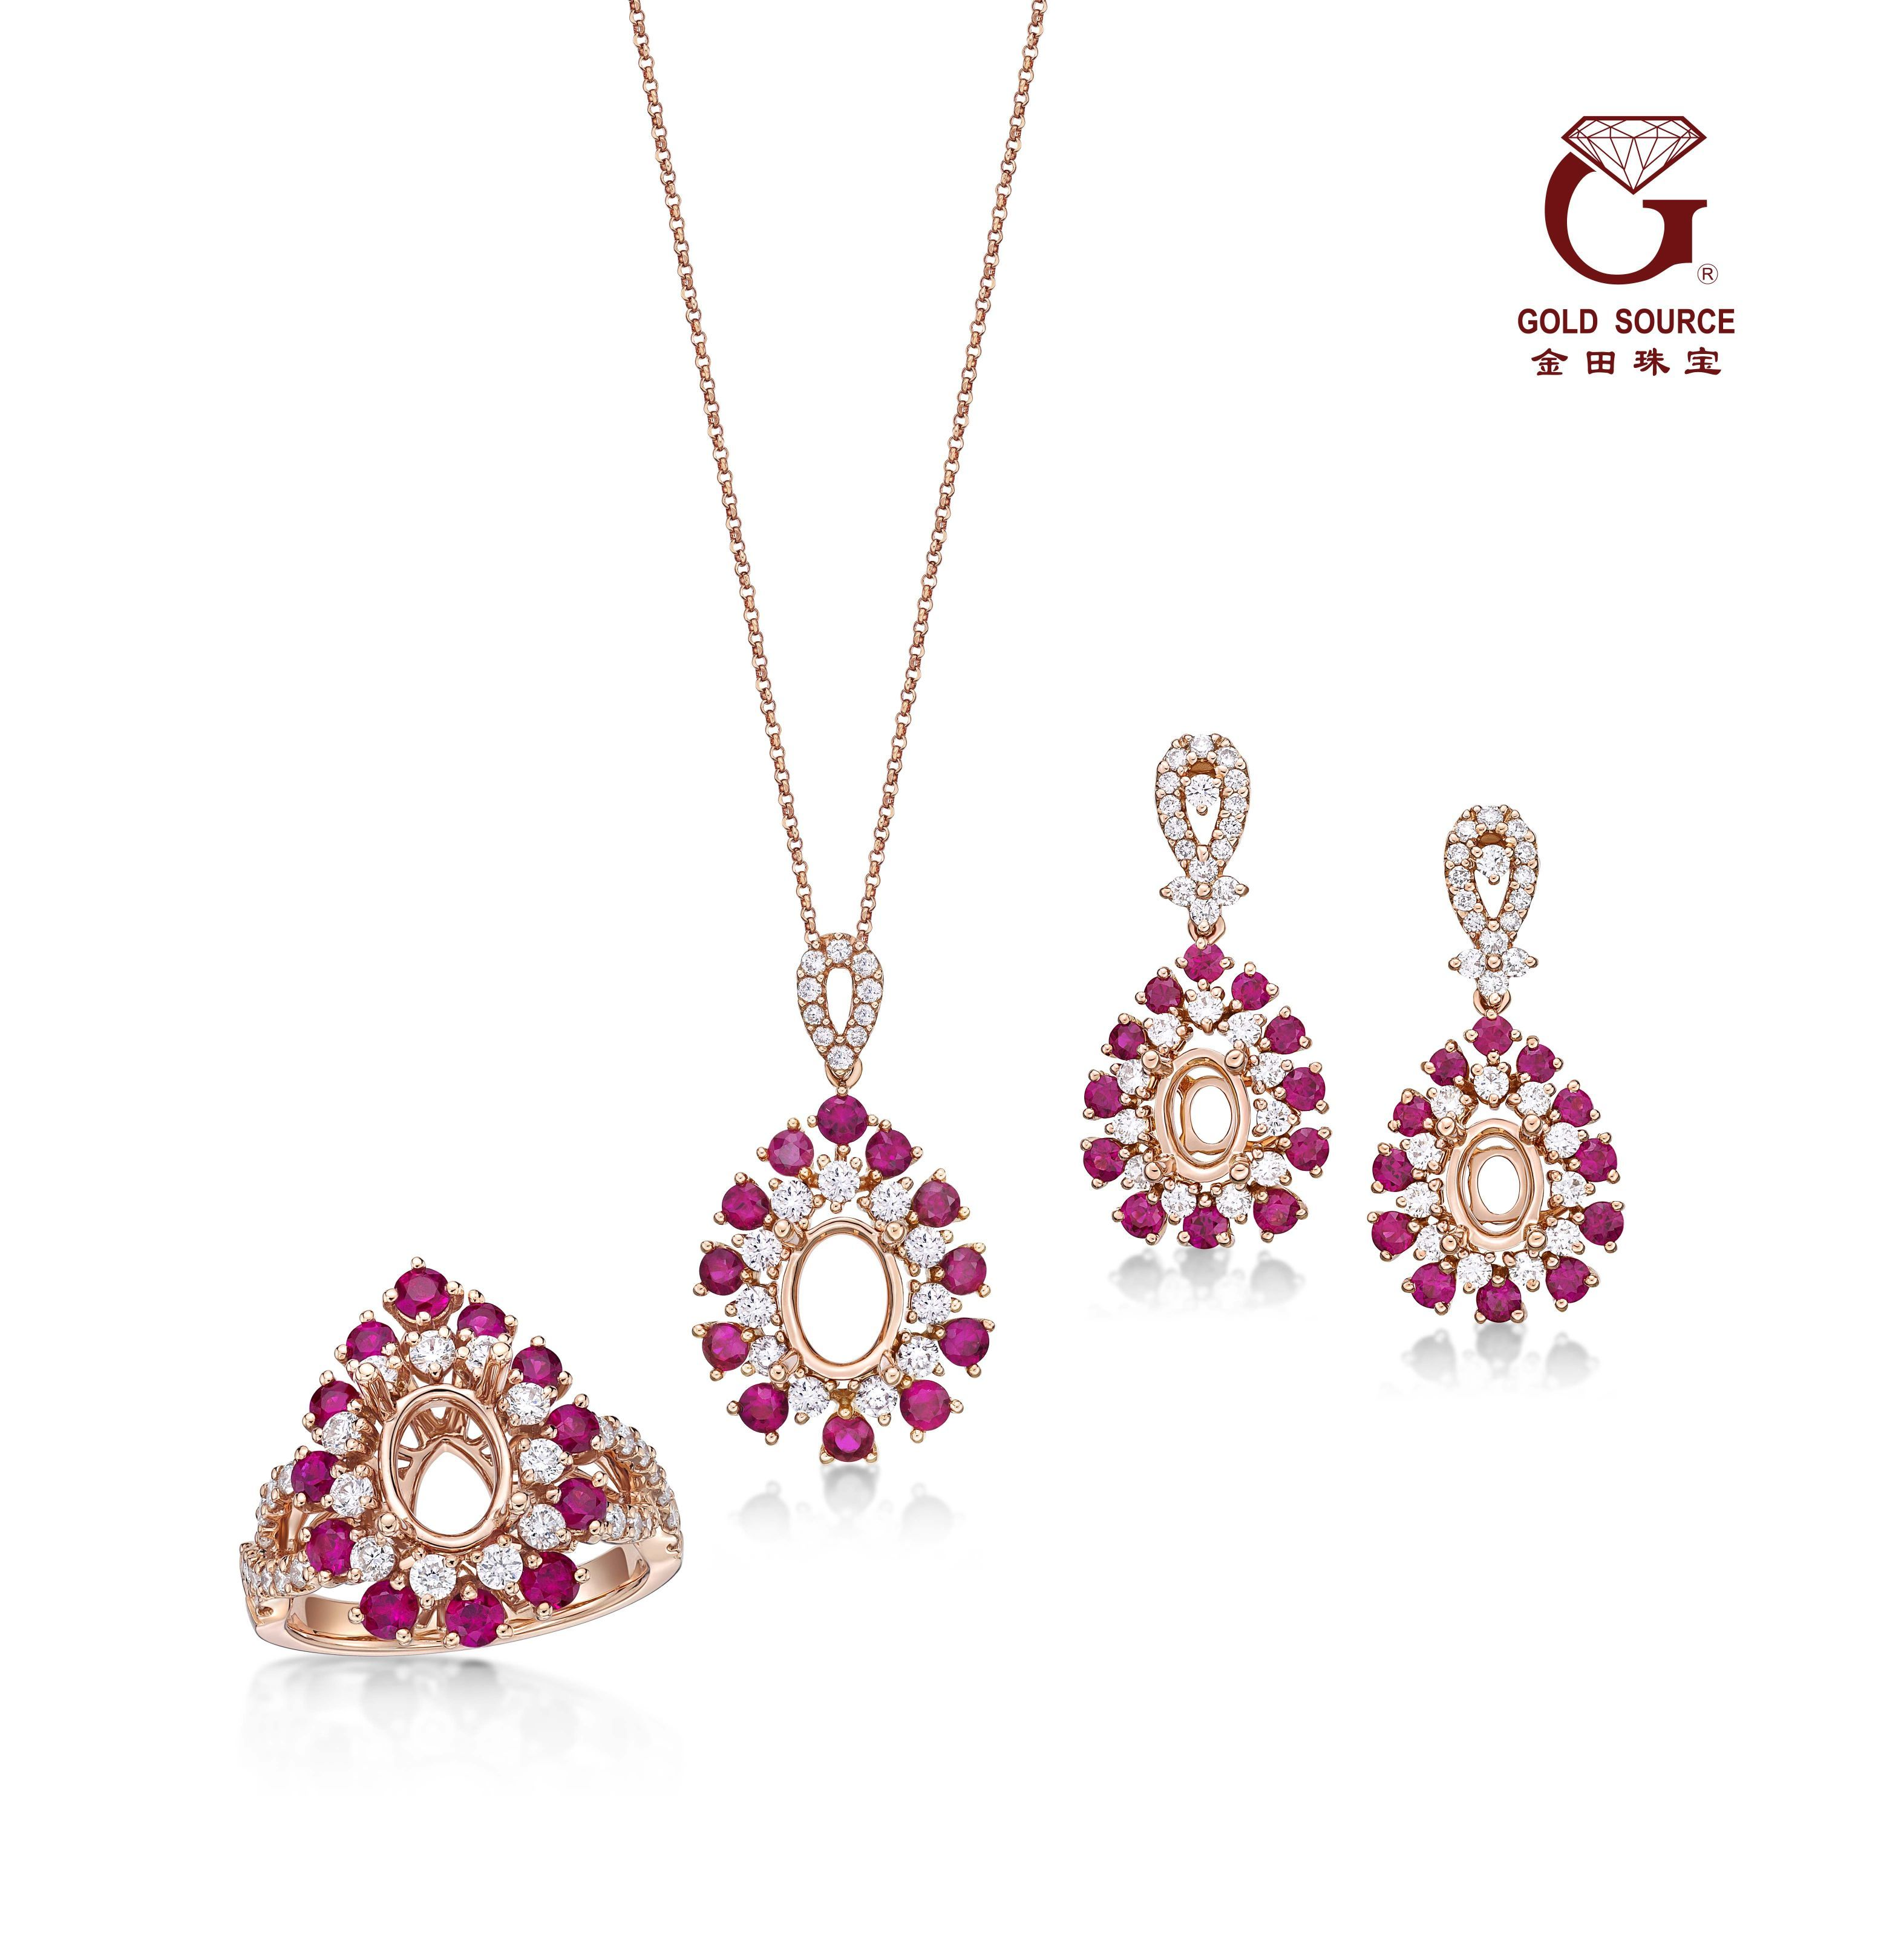 Trio setu collection features karat gold rings pendants and